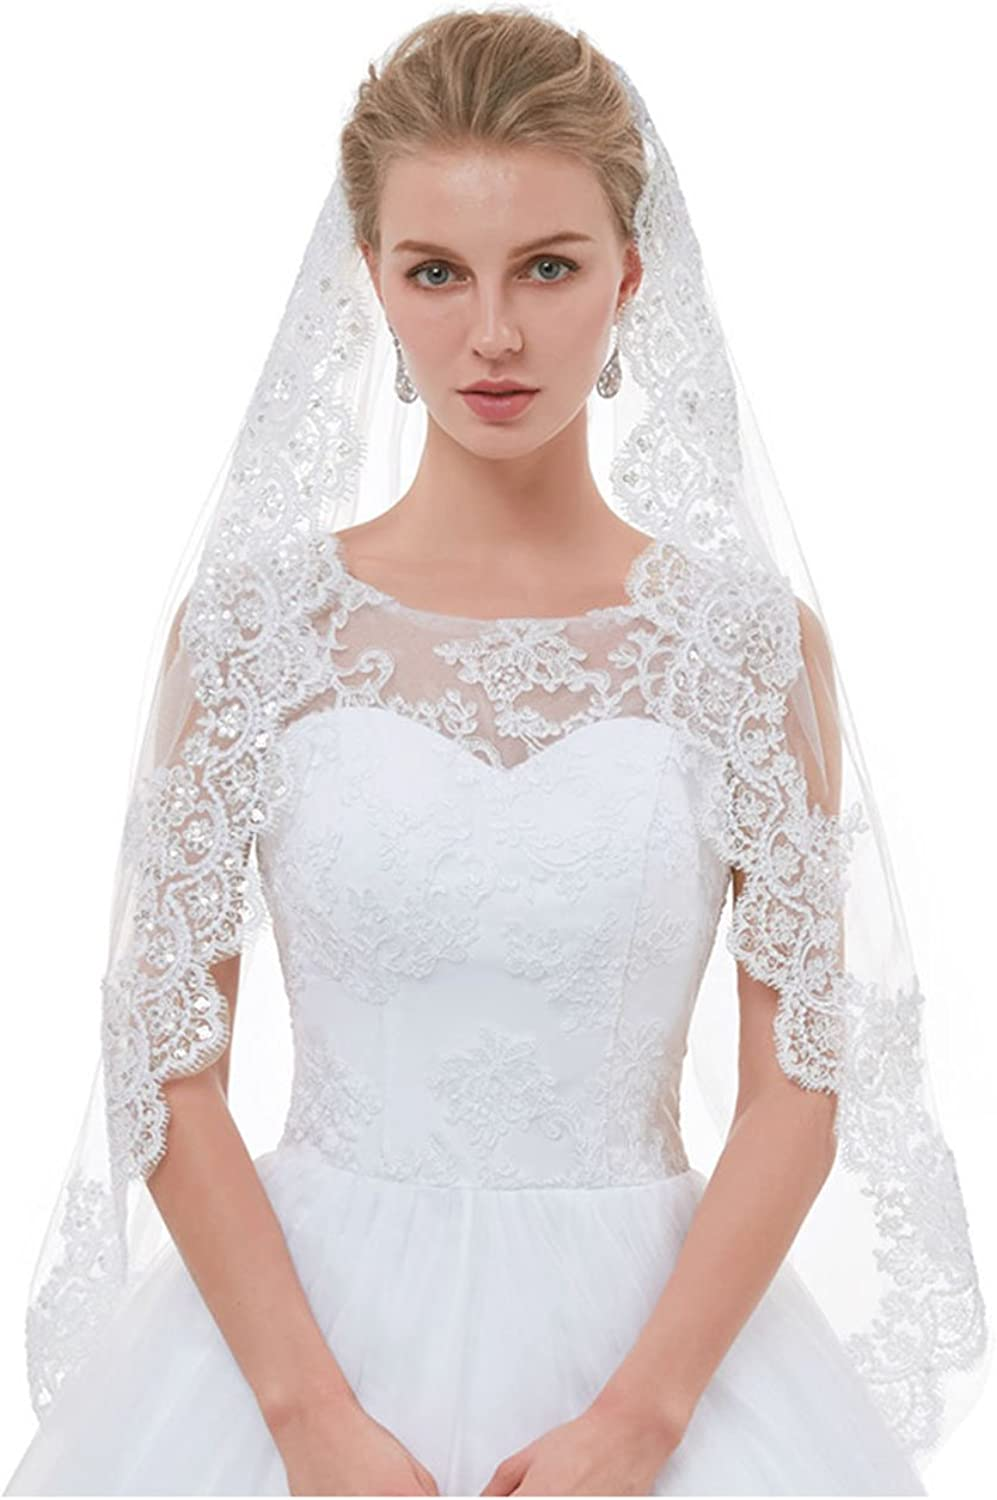 AIBIYI 1 Tier   2 Tier Lace Fingertip Veils for Brides with Comb ABYV10